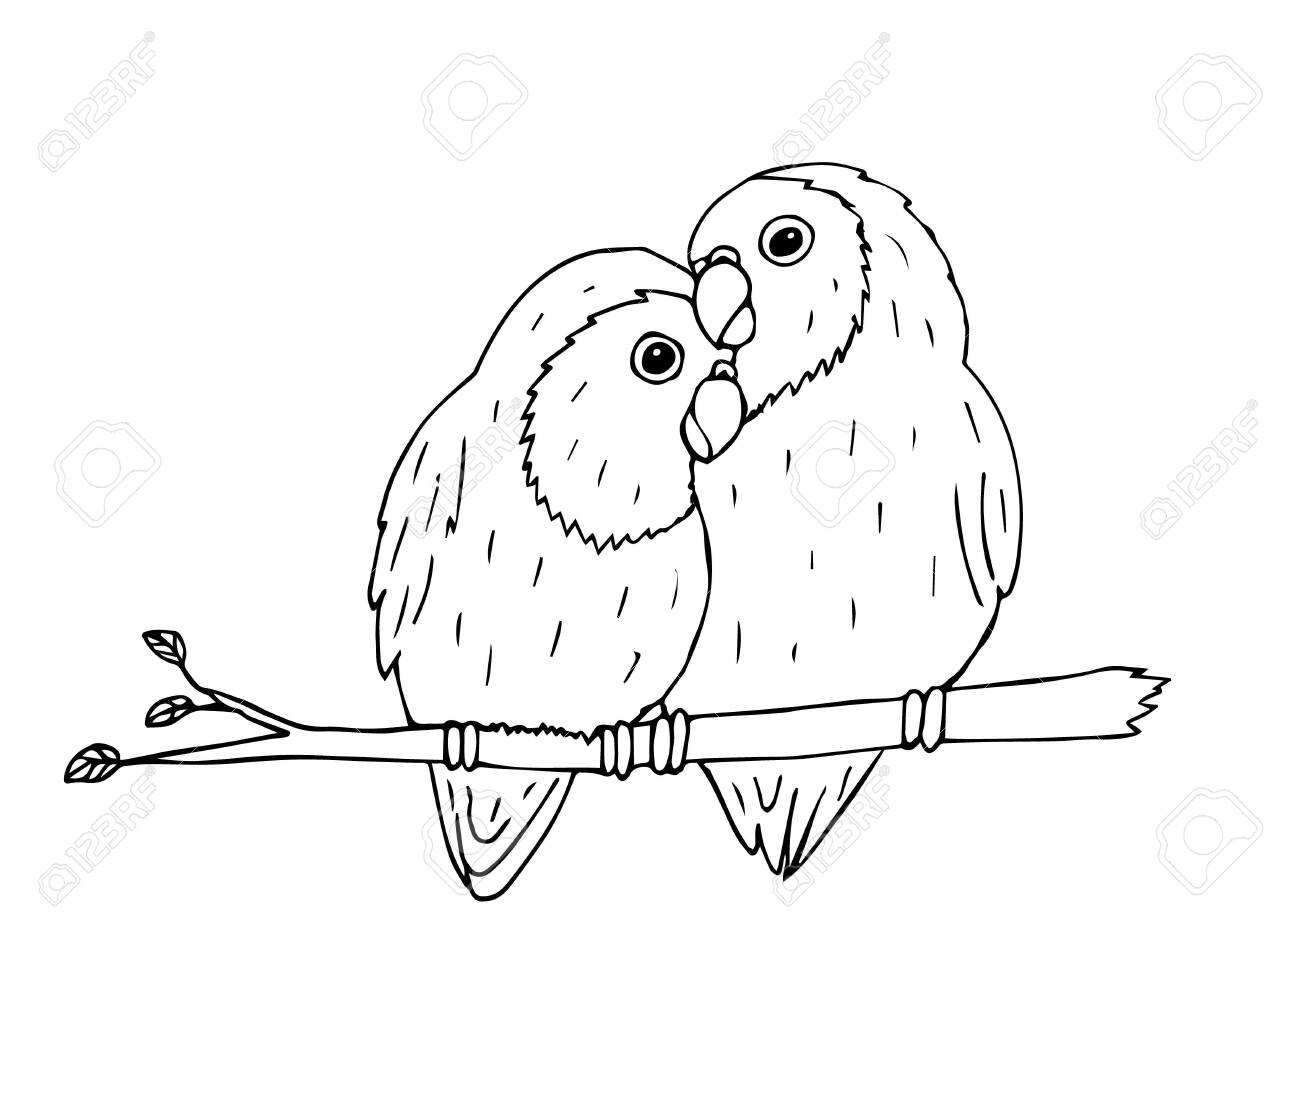 Hand Drawn Doodle Sketch Black Outline Lovebirds Parrots Pair Royalty Free Cliparts Vectors And Stock Illustration Image 142020590